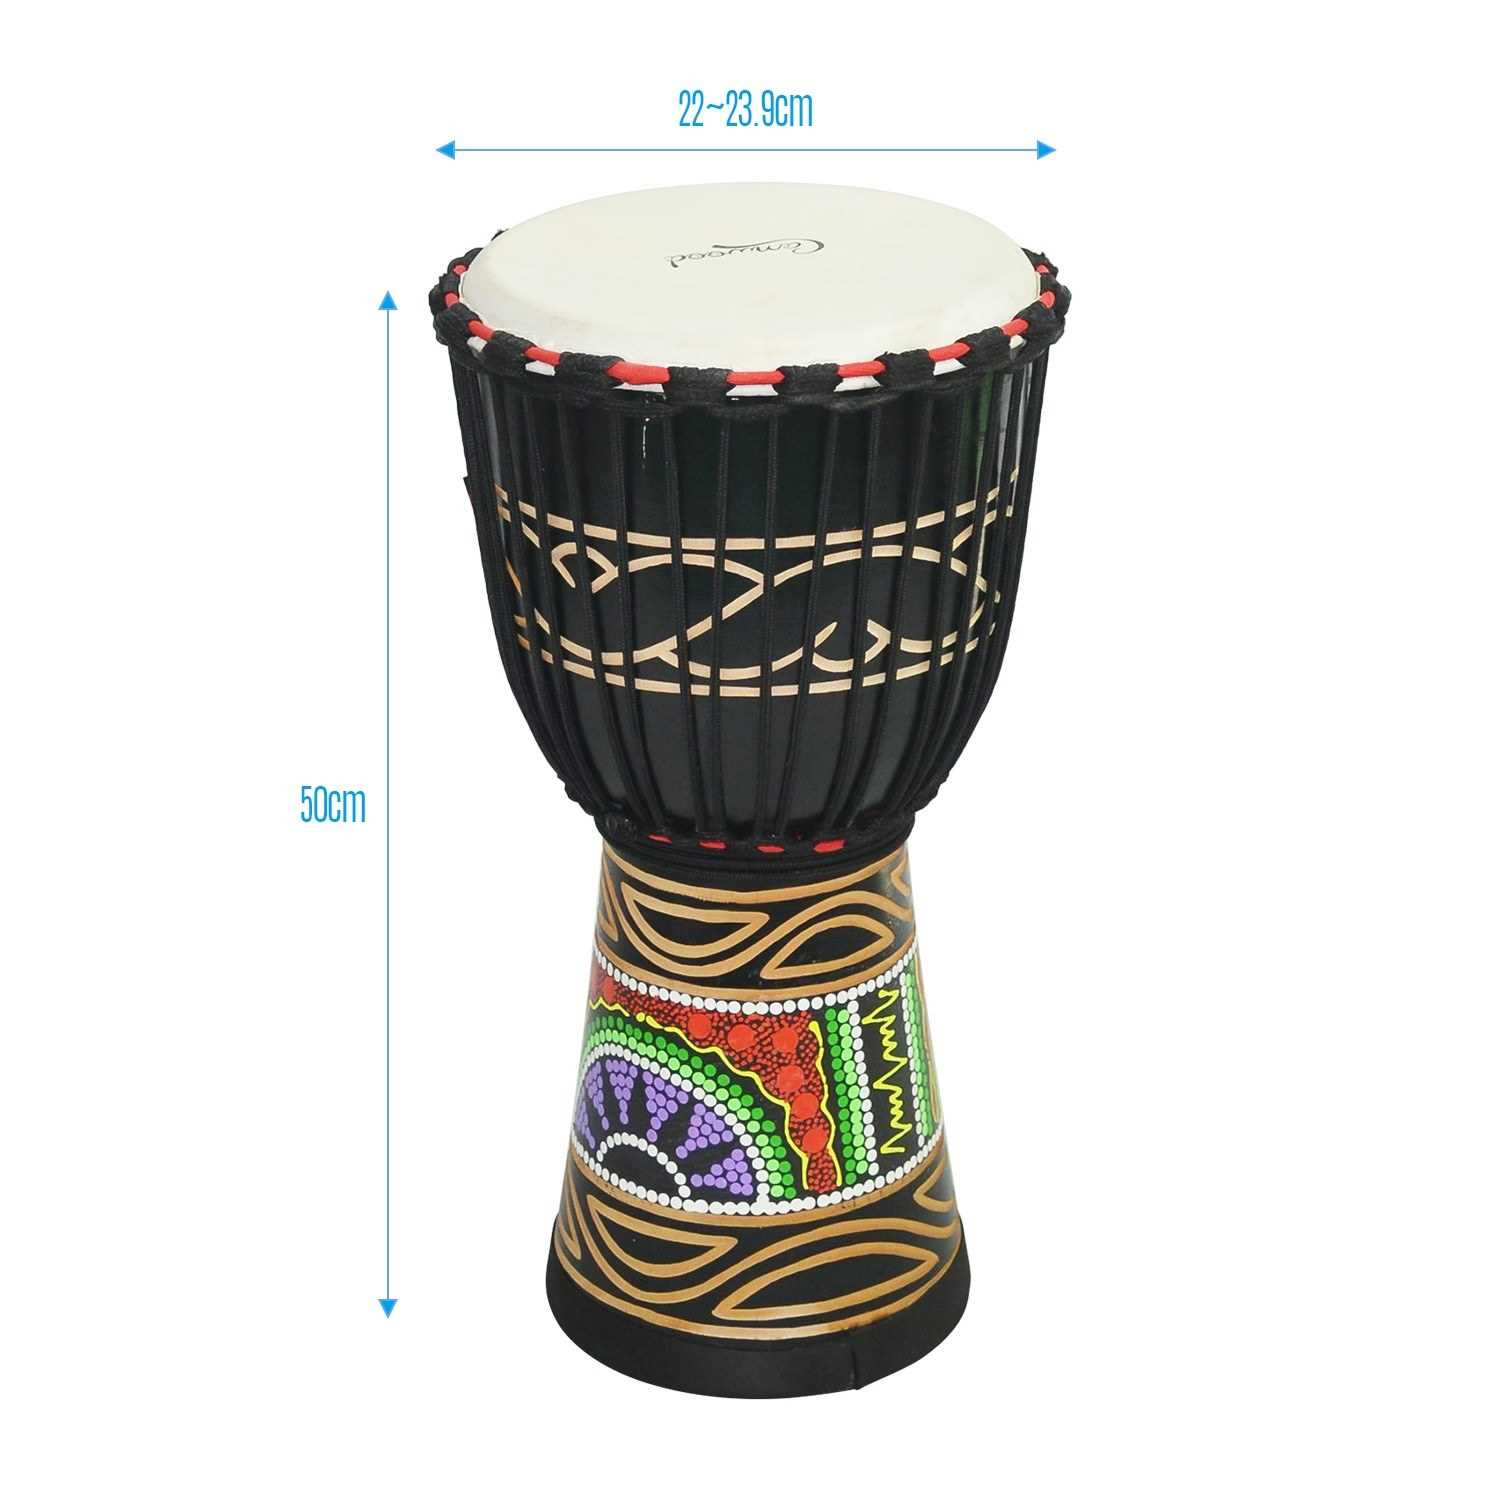 Camwood Wooden African Drum Djembe Bongo Congo Hand Drum Percussion